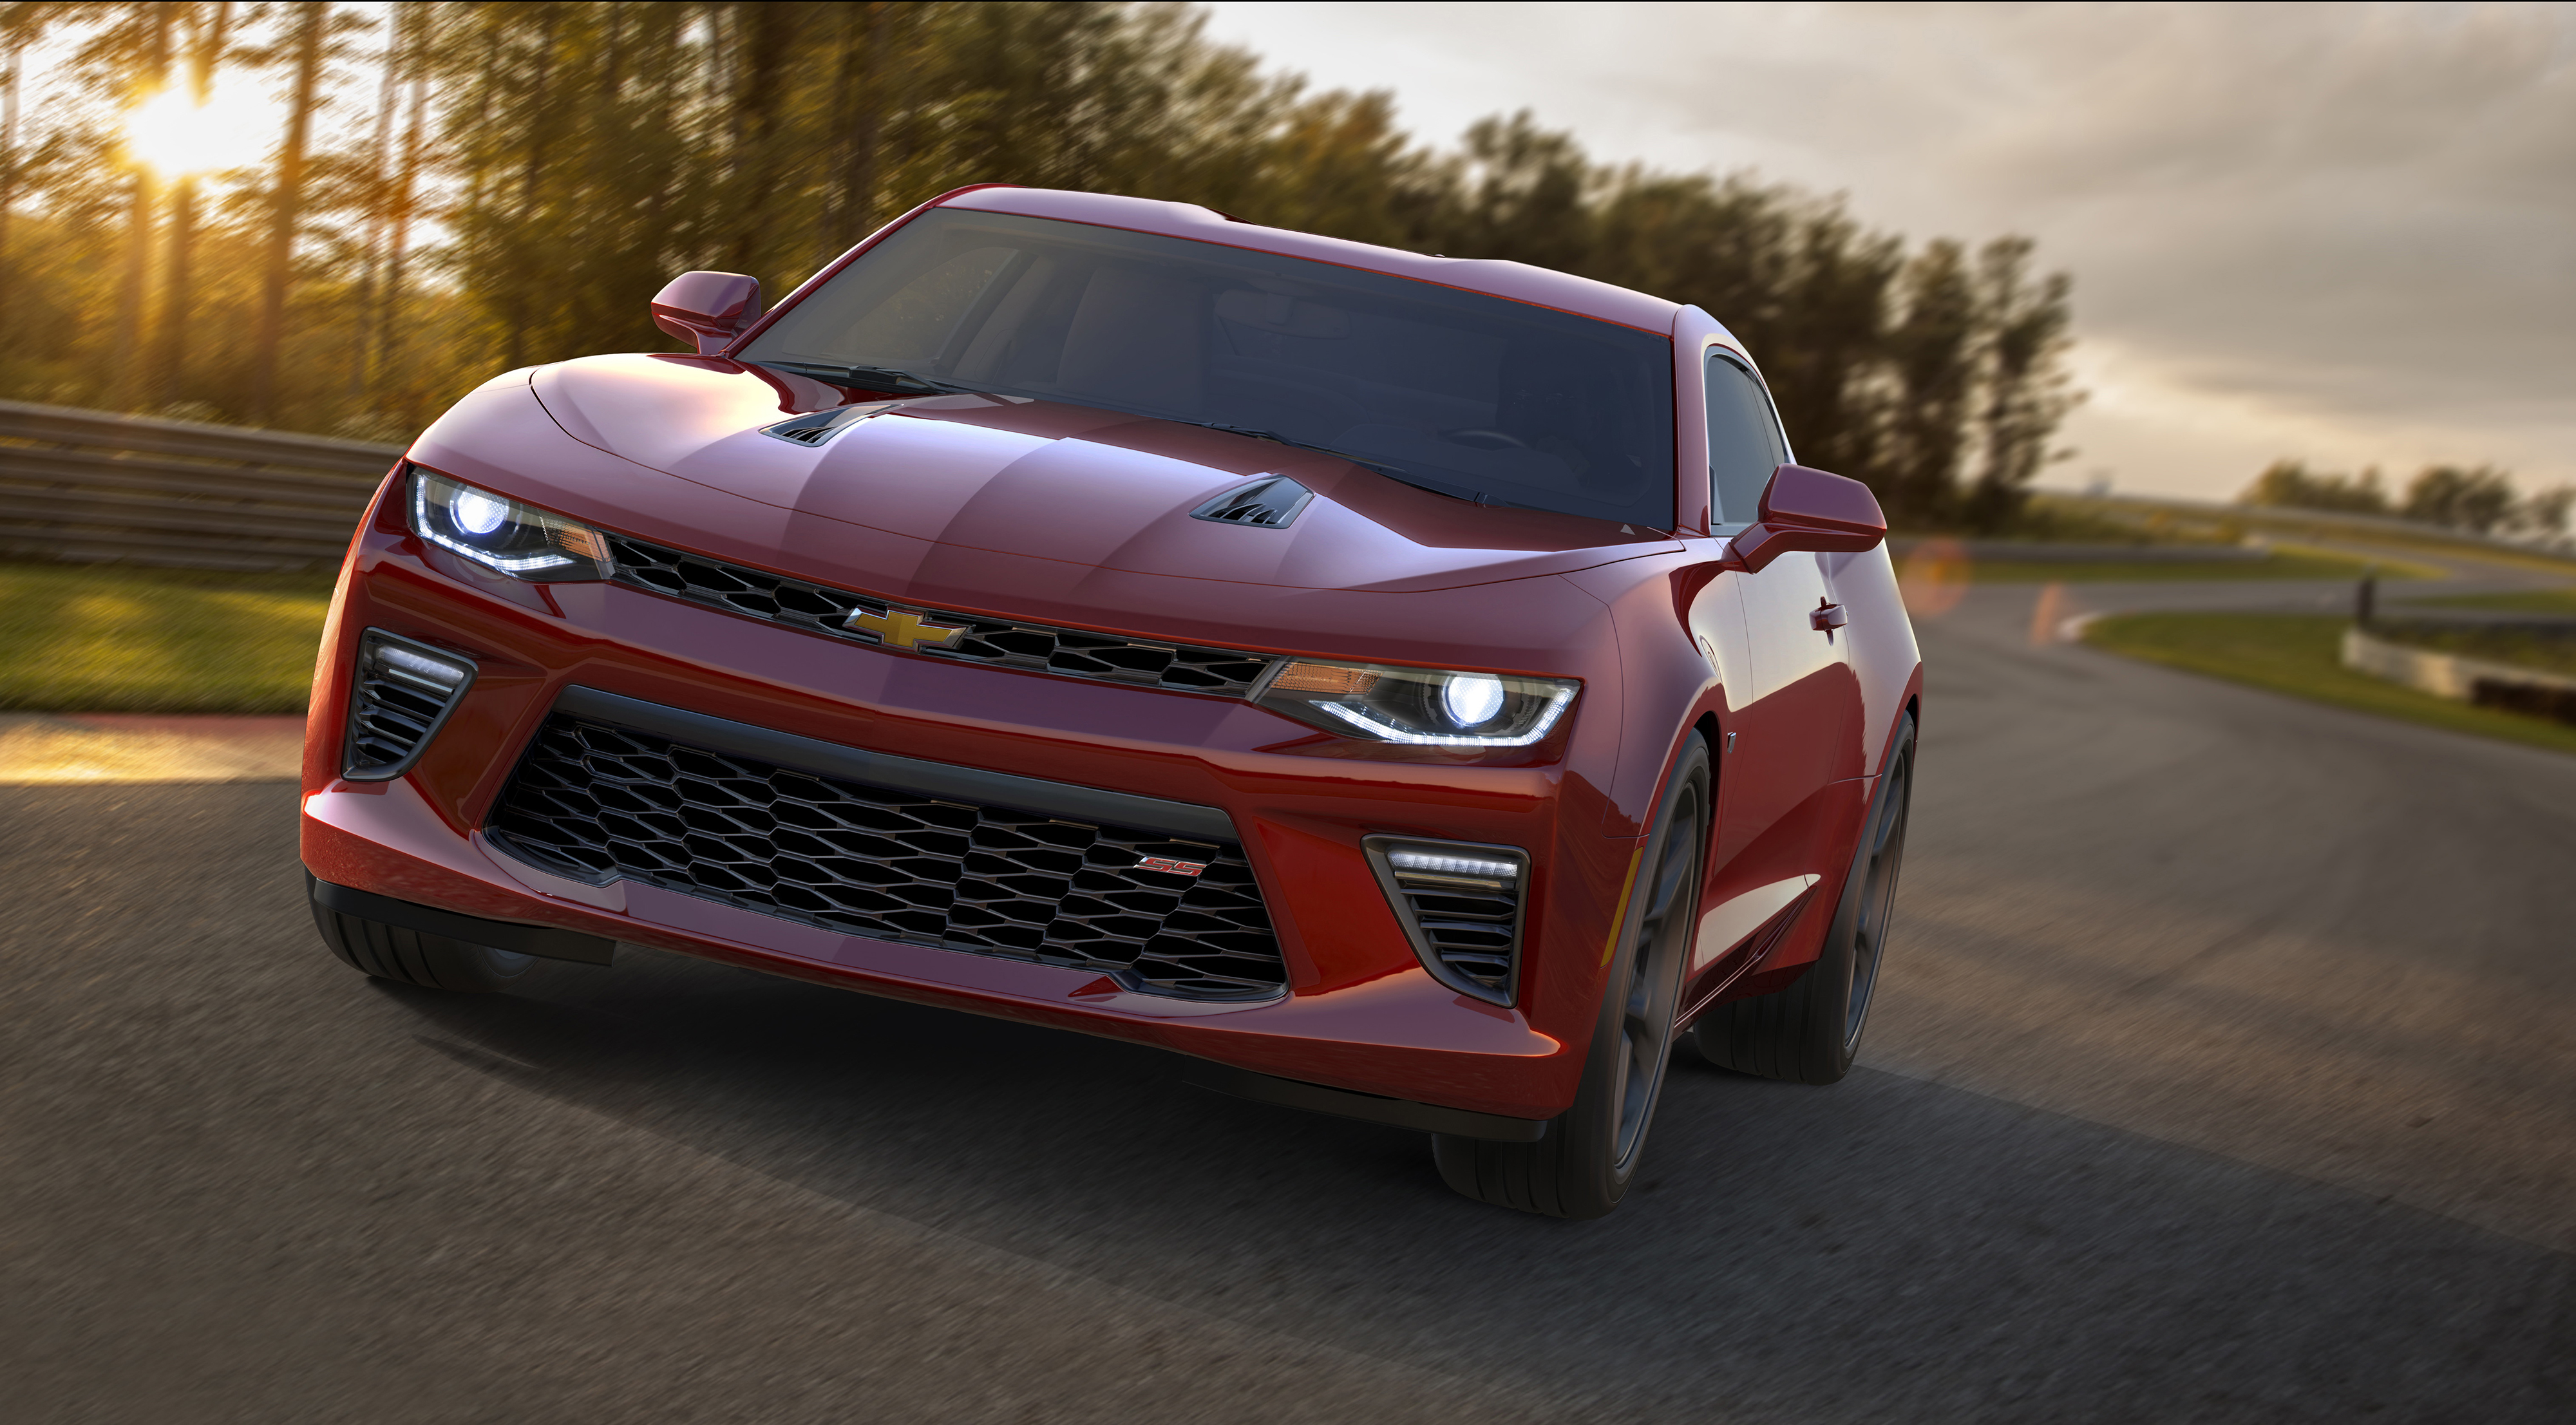 2016 Camaro: 6 Fast Facts - Motor Review